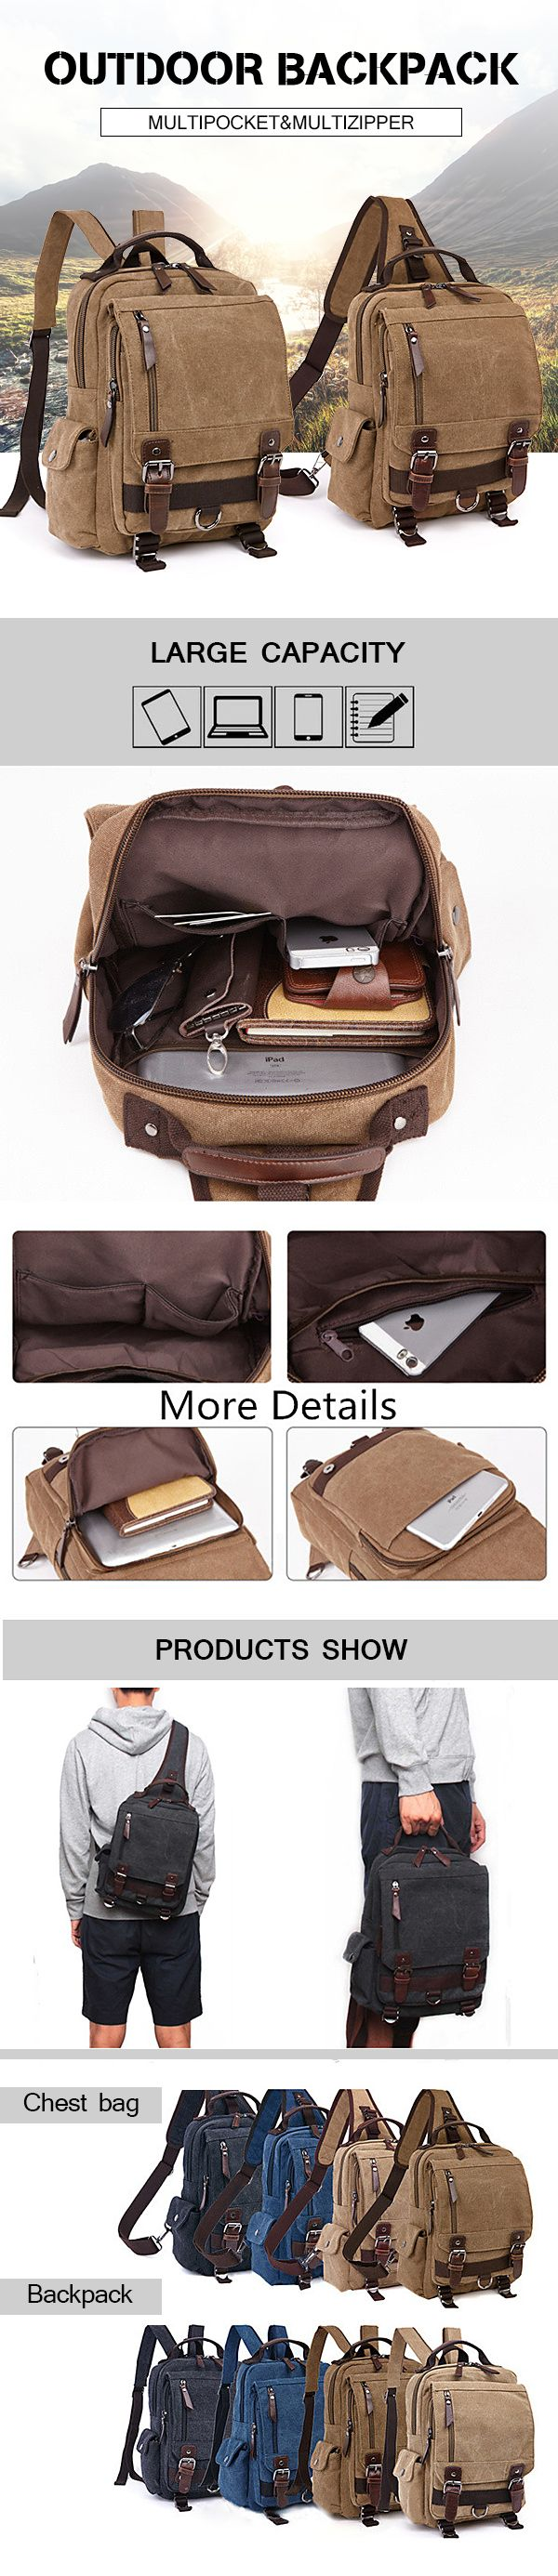 Travel Outdoor Backpack_ Casual Crossbody Bag